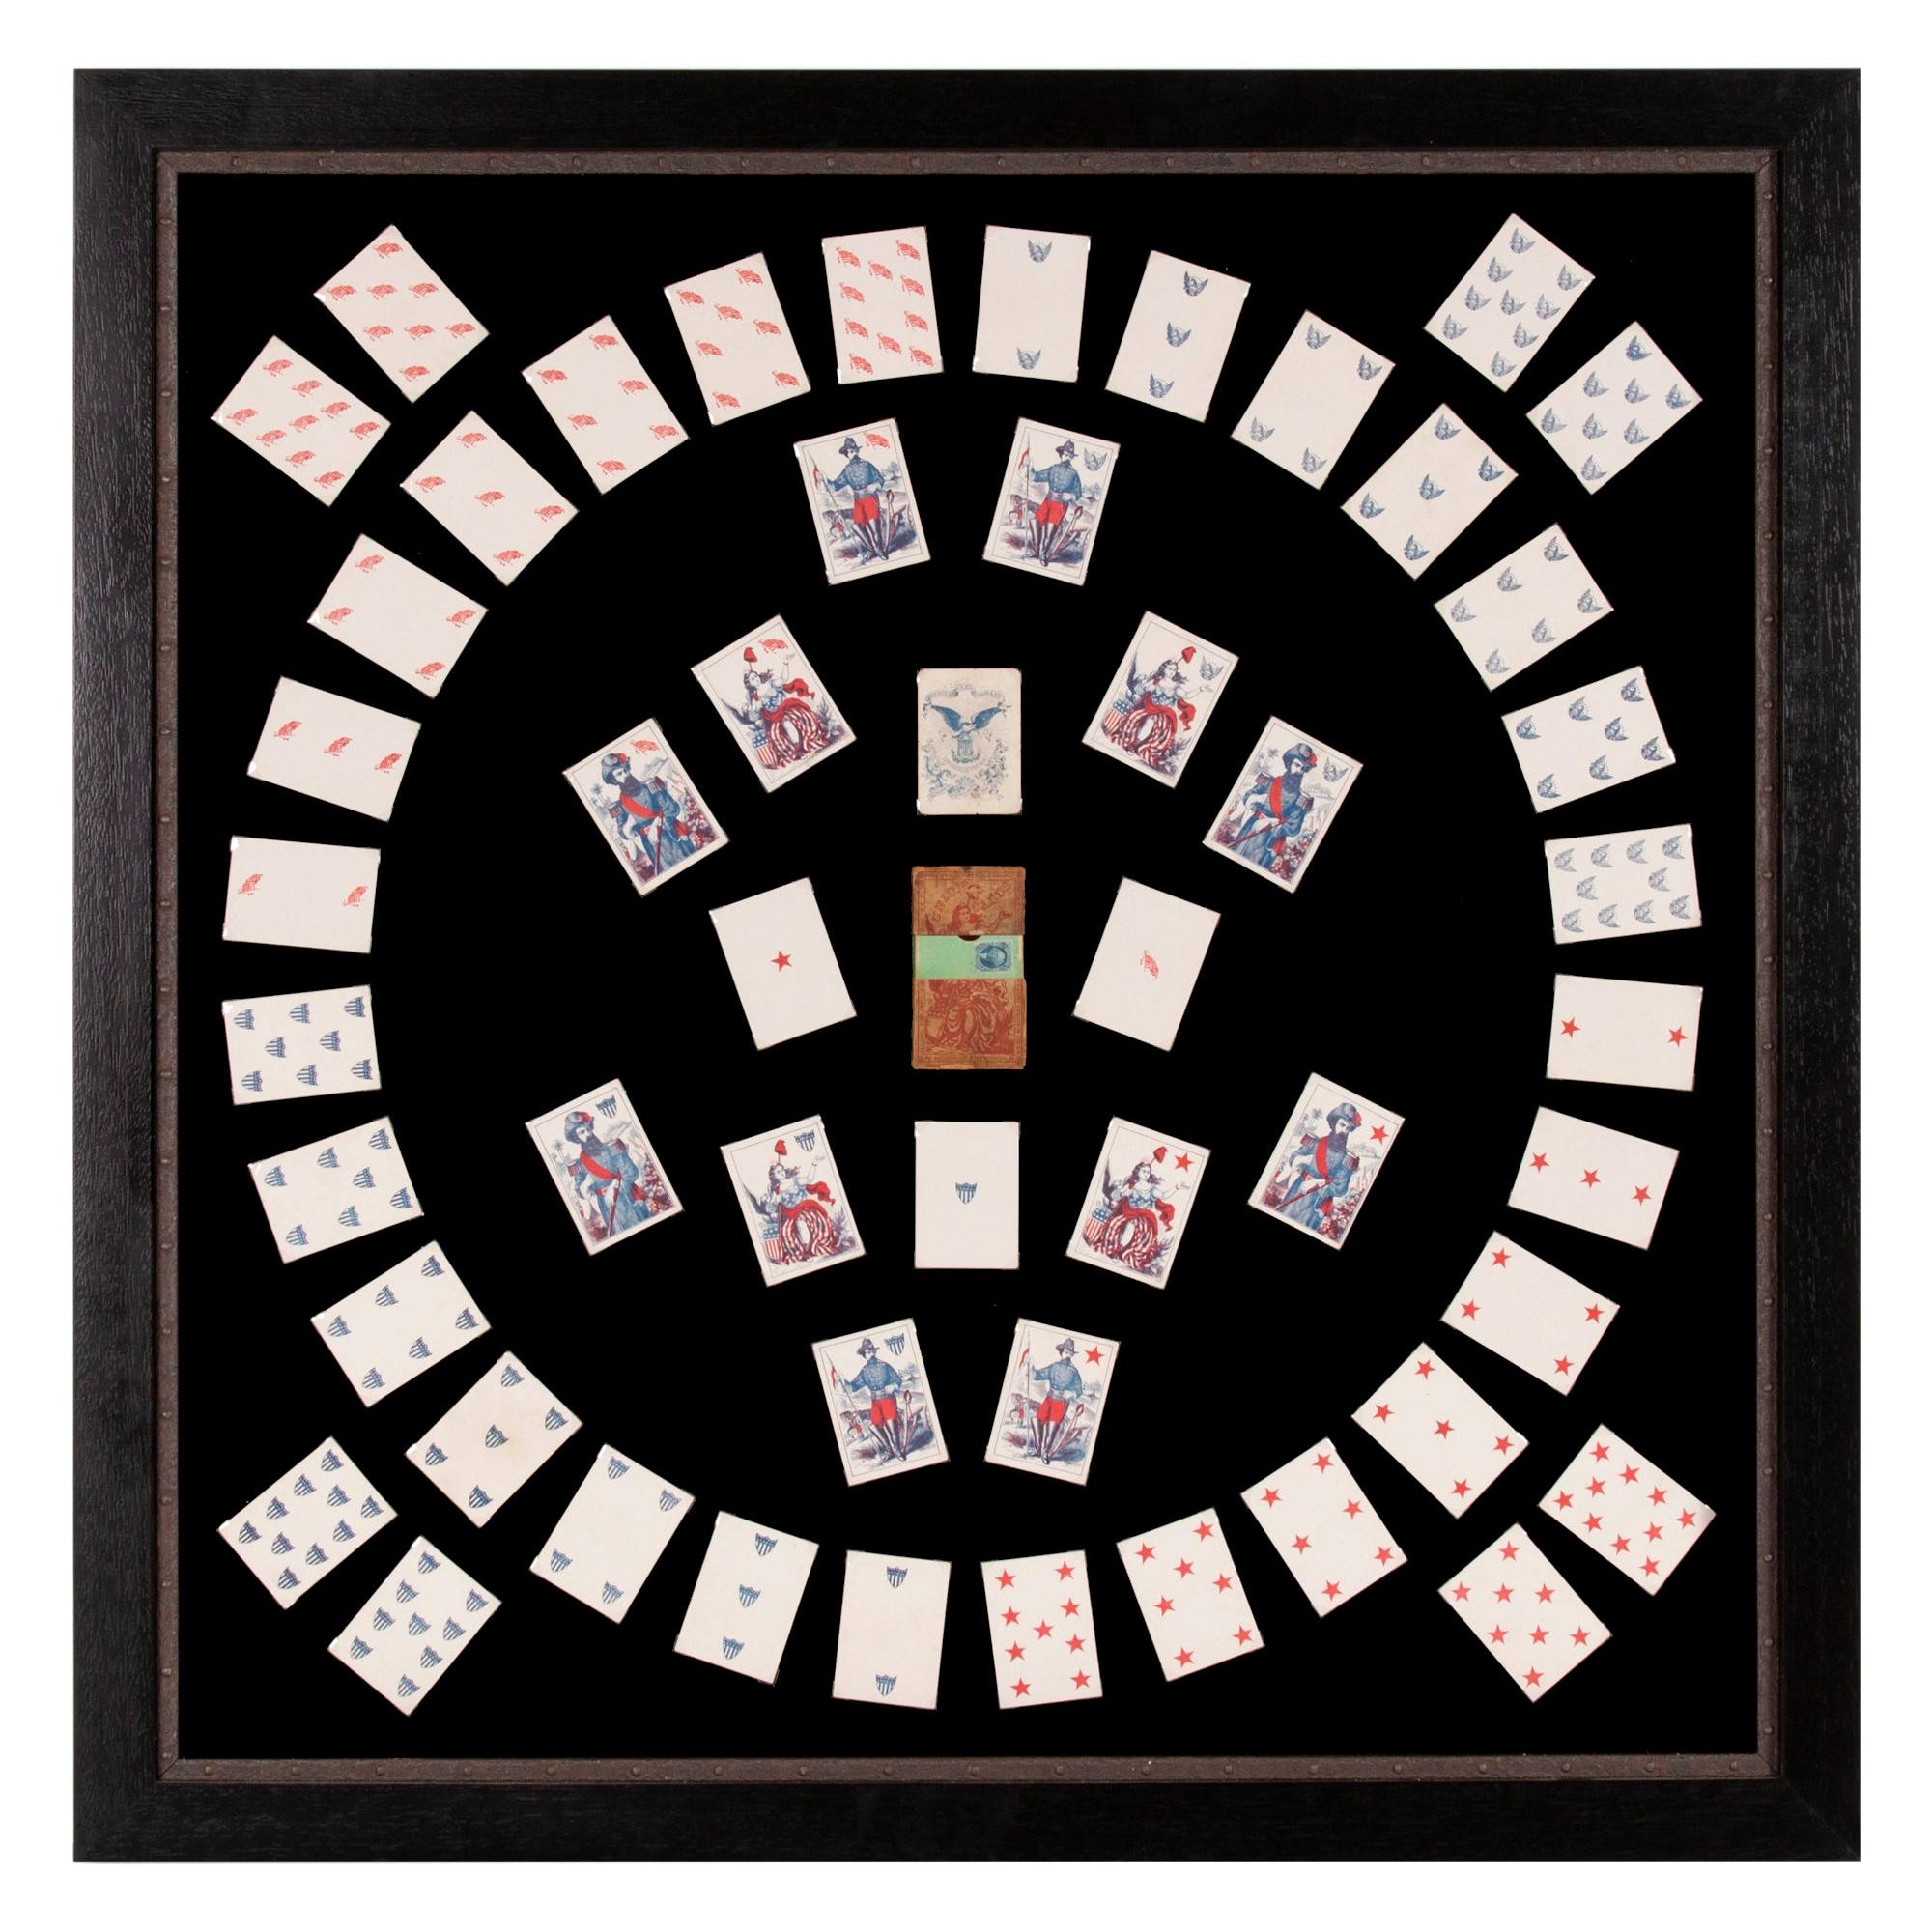 1862 Civil War Playing Cards with Stars, Flag, Sheild's and Eagles